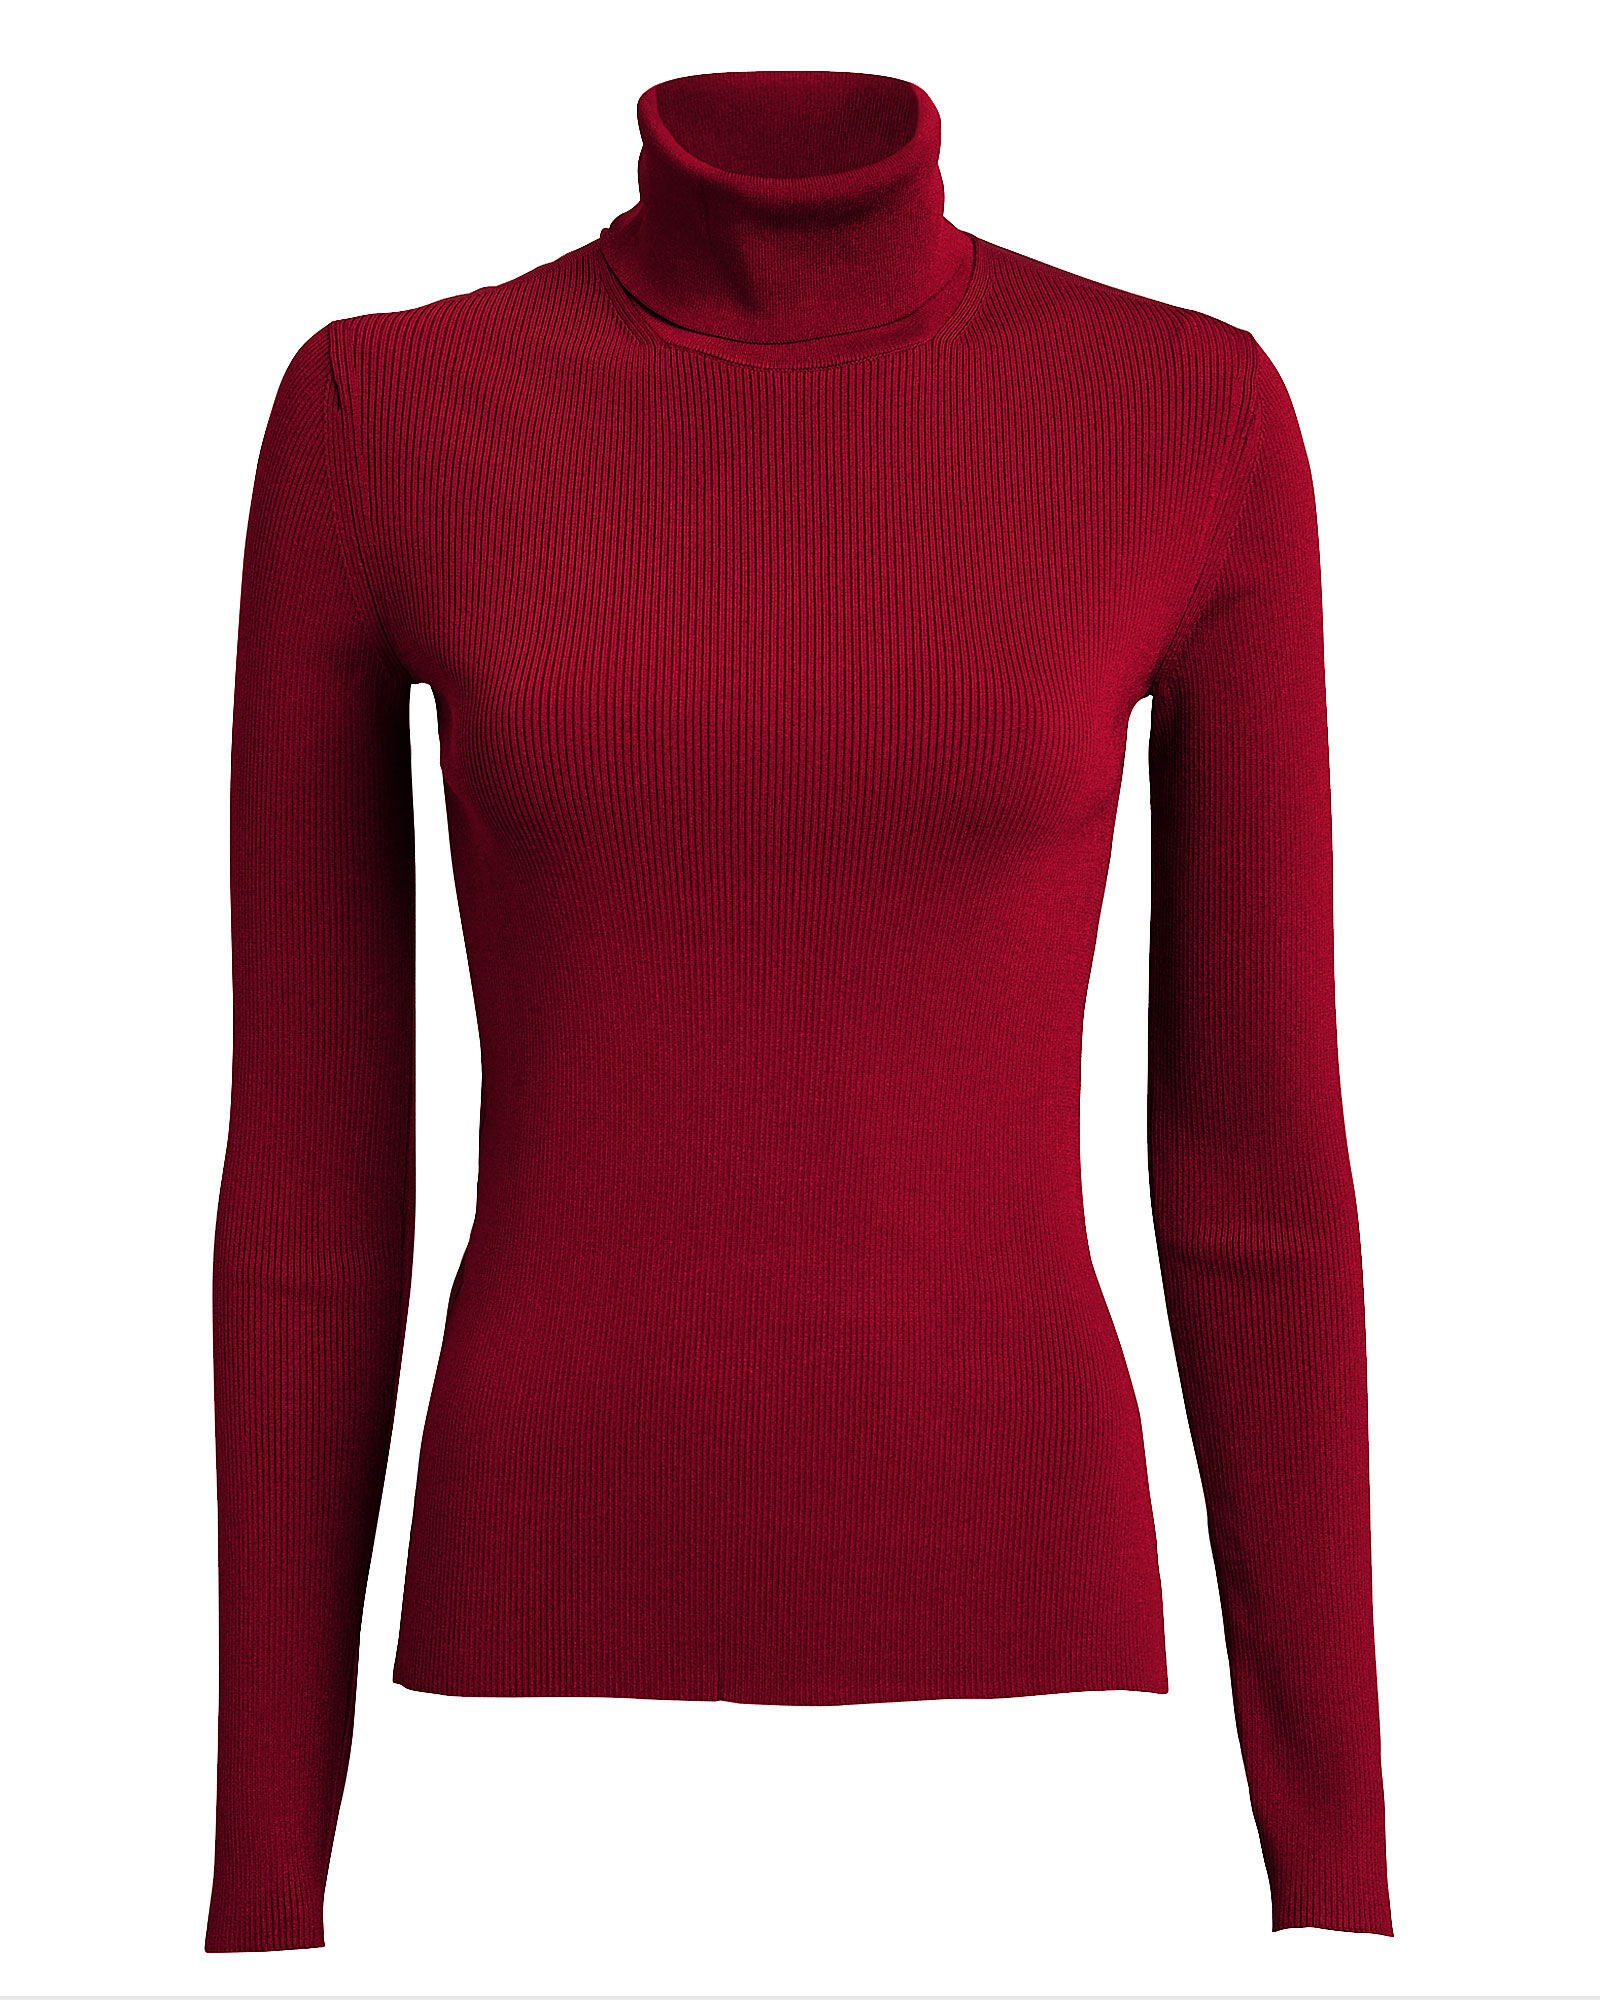 Ribbed Stretch Turtleneck Top